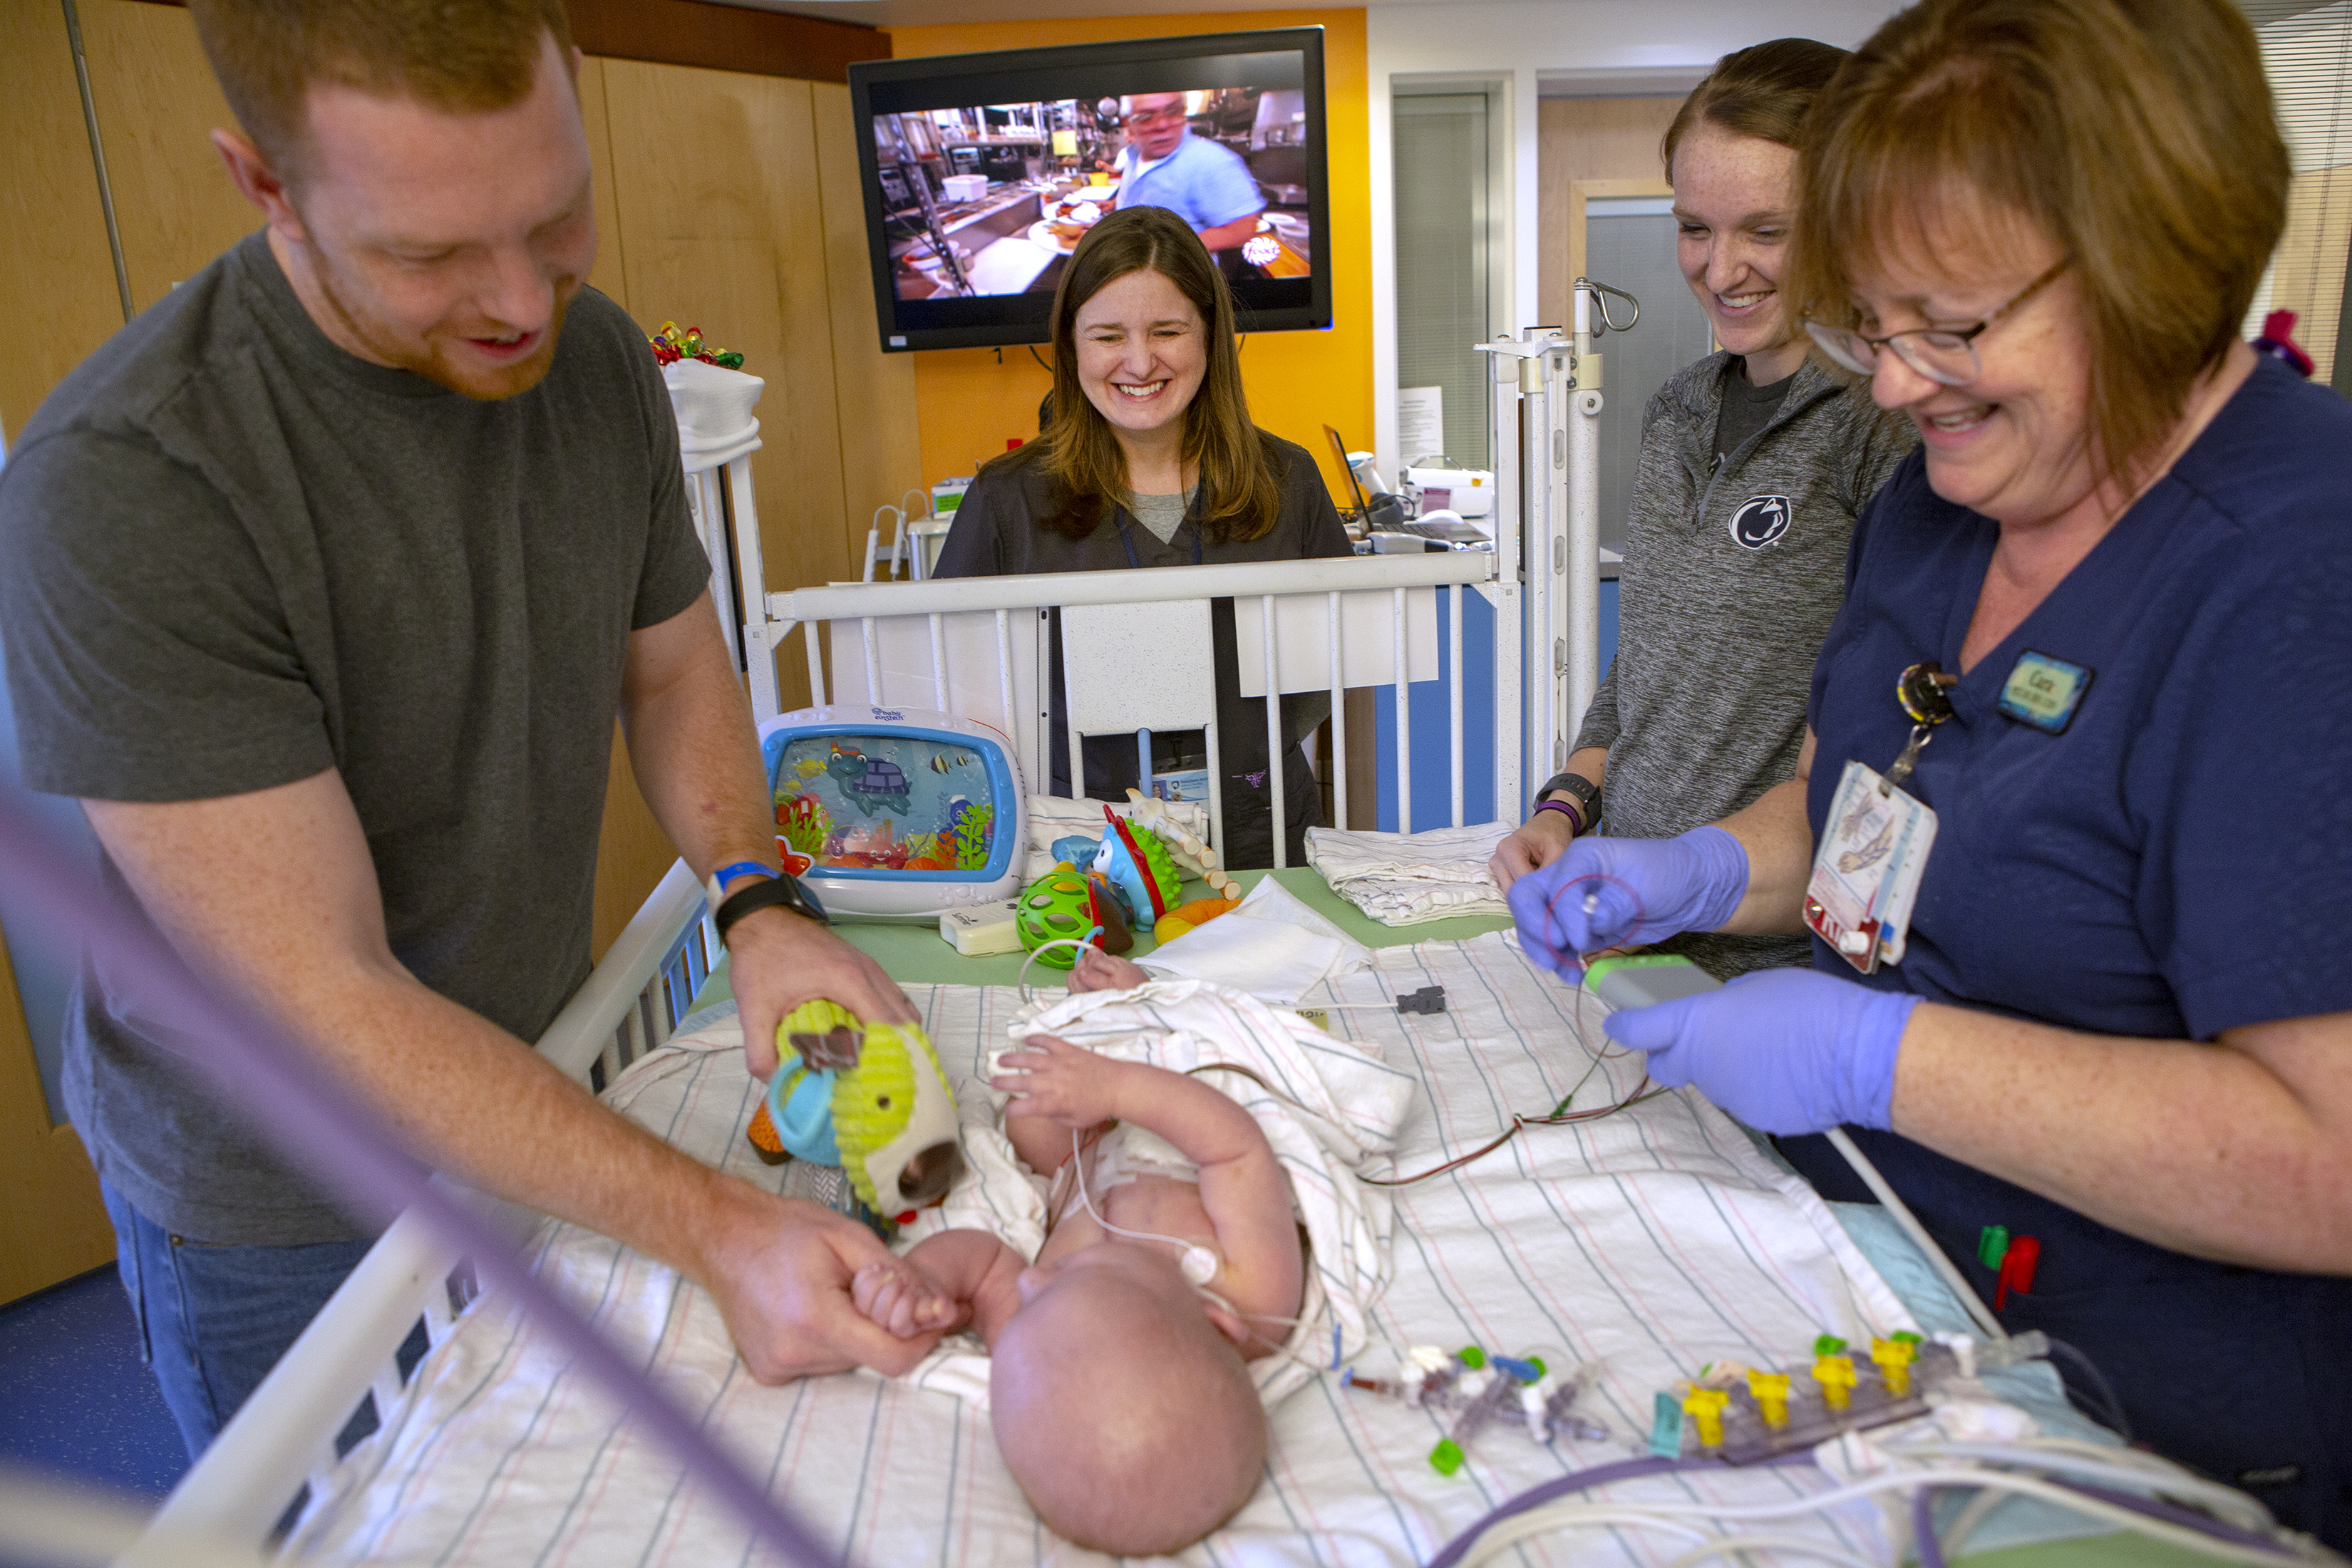 Deborah Berini smiles at the foot of a crib in the Pediatric Intensive Care Unit at Penn State Children's Hospital. PICU nurse Cara Kapaun, right foreground, attaches intravenous lines to a baby who is lying in the crib. The father, Zach Hoover, stands on the left, touching his son's hand and holding a toy. The mother, Rachel, smiles at her son. Behind them is a TV monitor with a program on it.